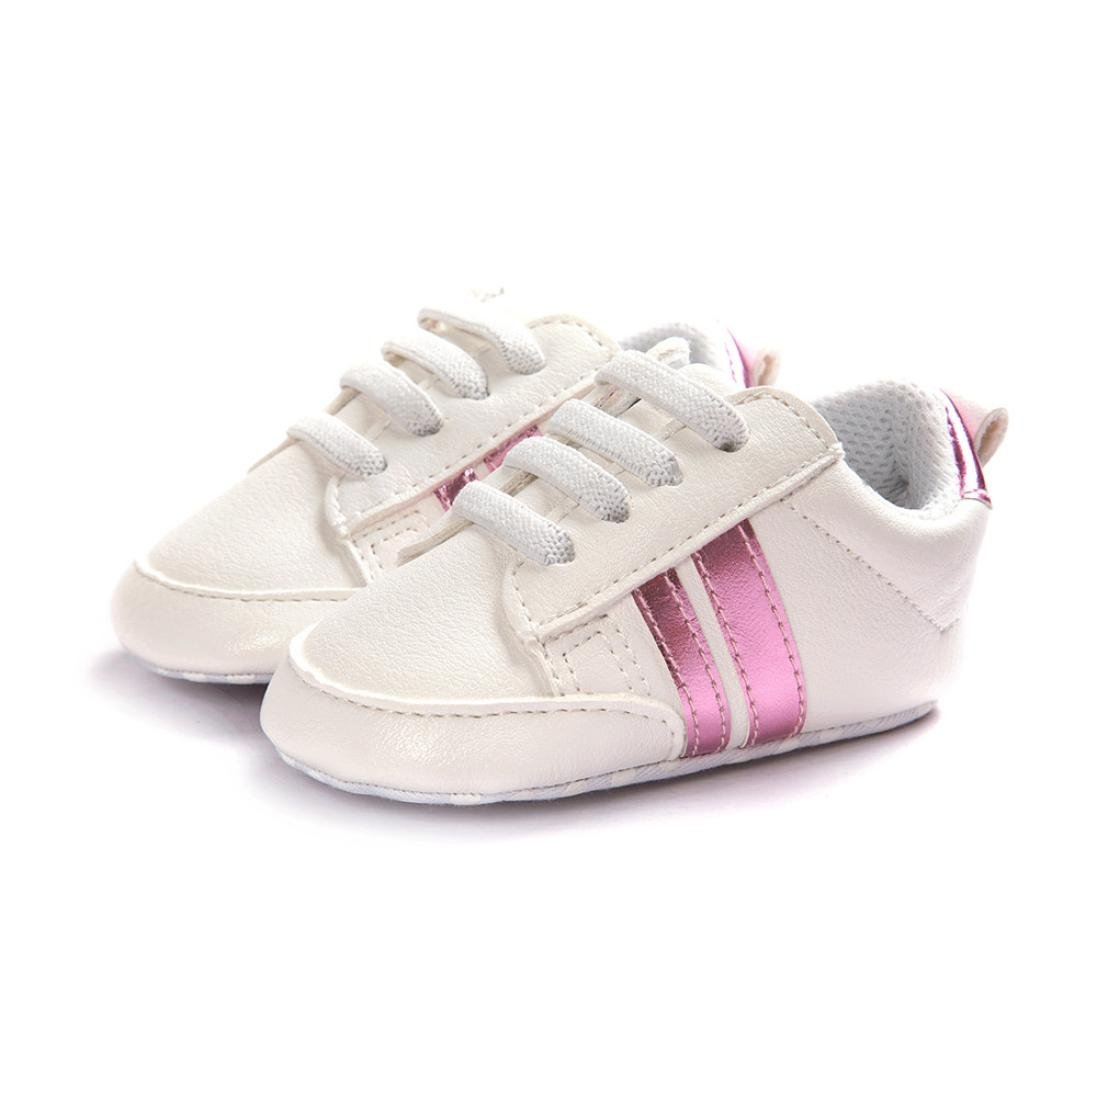 Usstore 1Pair unisex Baby infant Toddler Soft Sole Anti-skid Sneakers Shoes